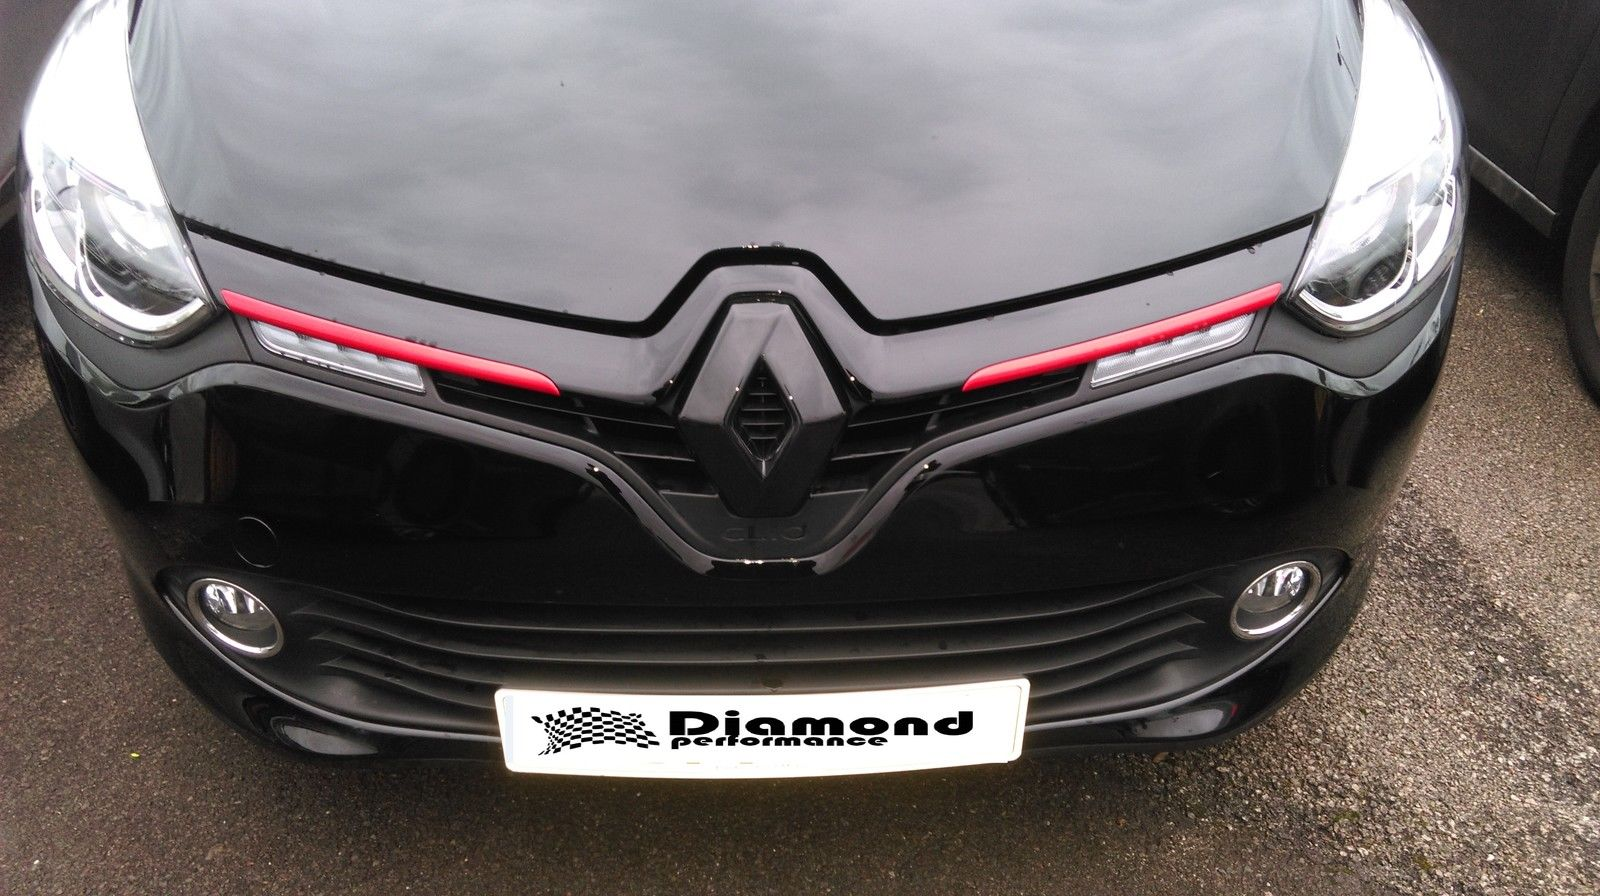 Renault Clio 4 2017 Facelift Gloss Black Badge Cover Front Only Diamond Performance